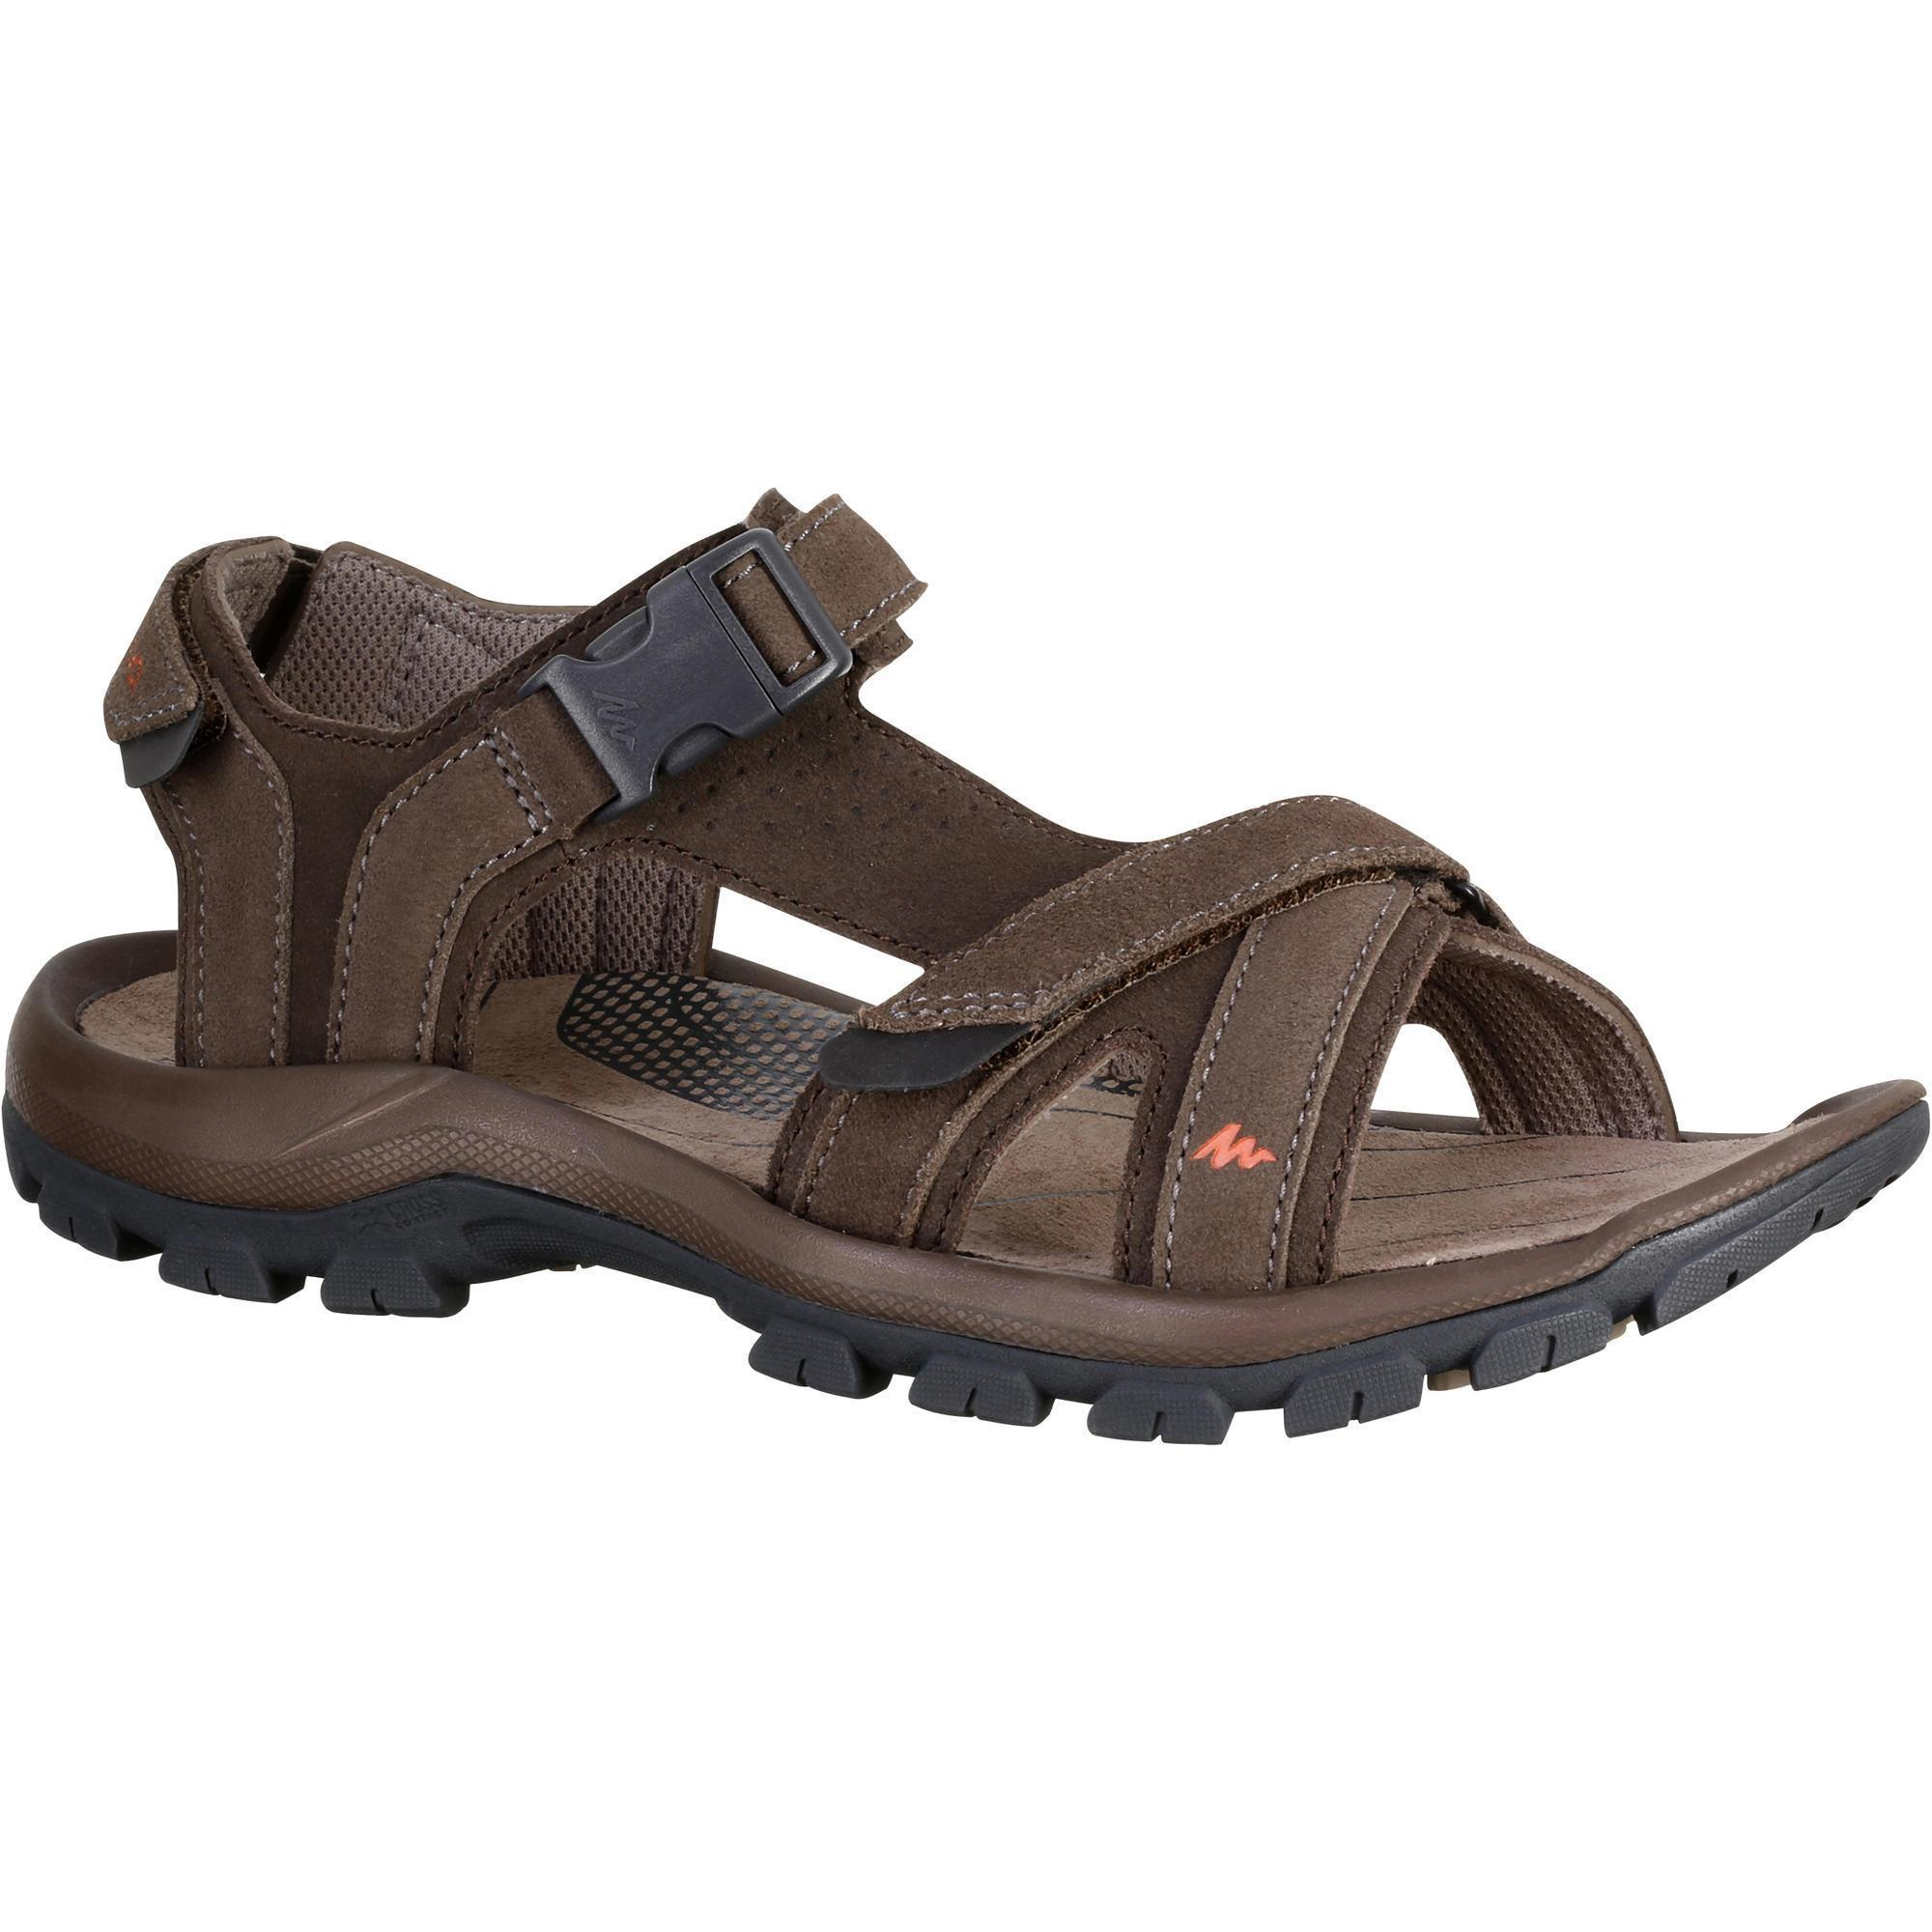 Men S Arpenaz 120 Hiking Sandals Brown Quechua